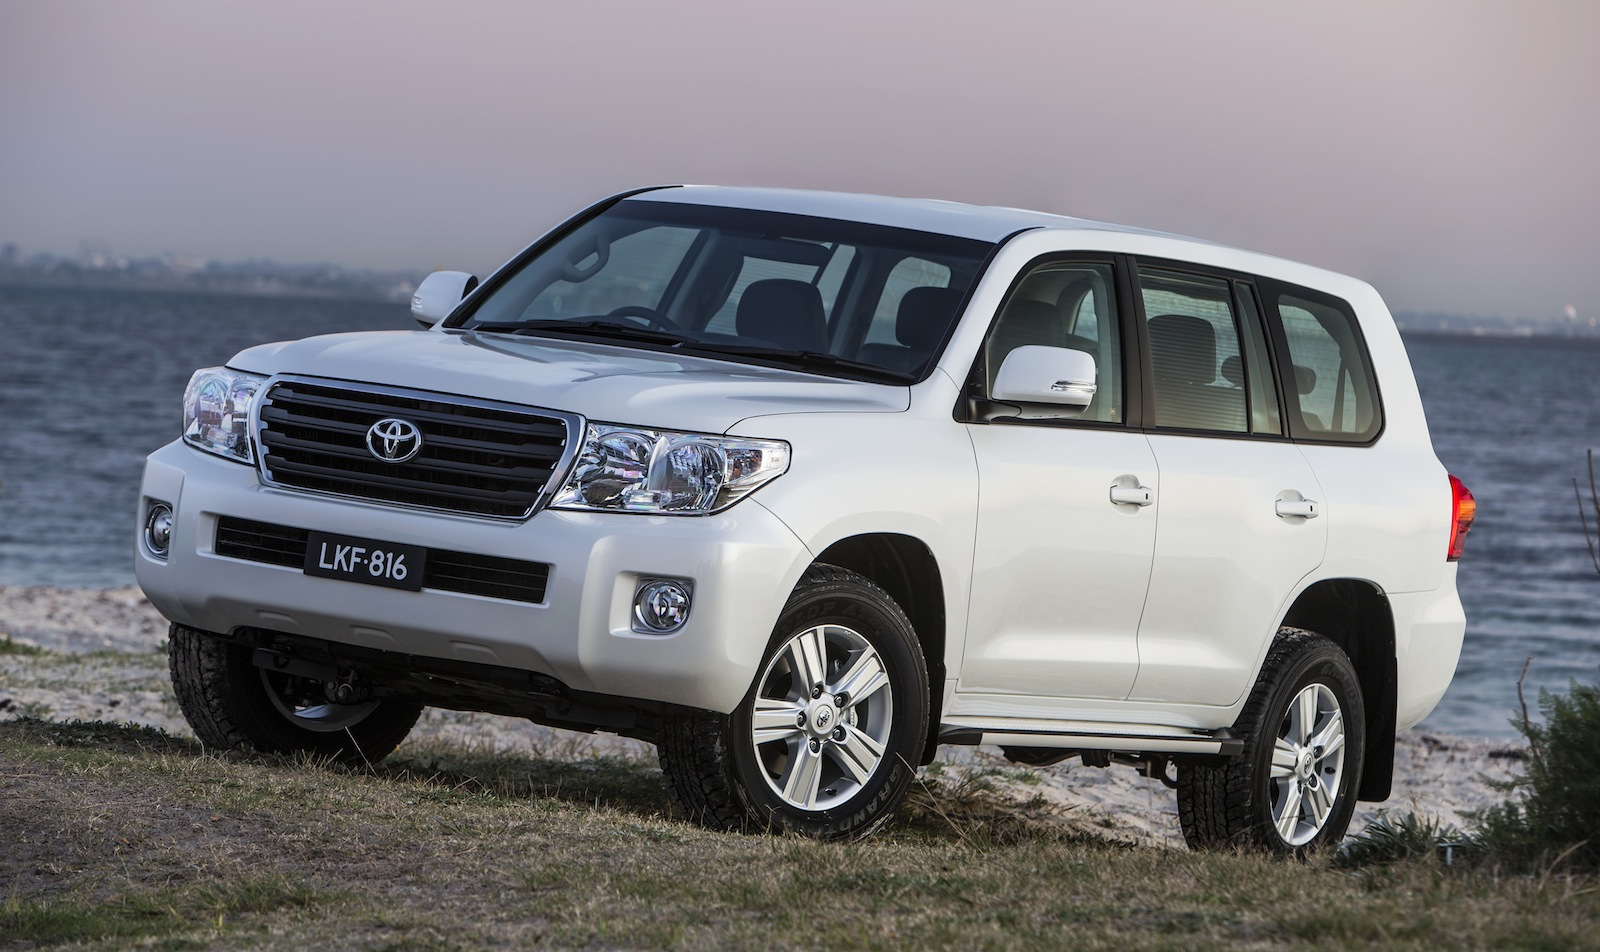 2013 toyota land cruiser 200 pictures information and. Black Bedroom Furniture Sets. Home Design Ideas